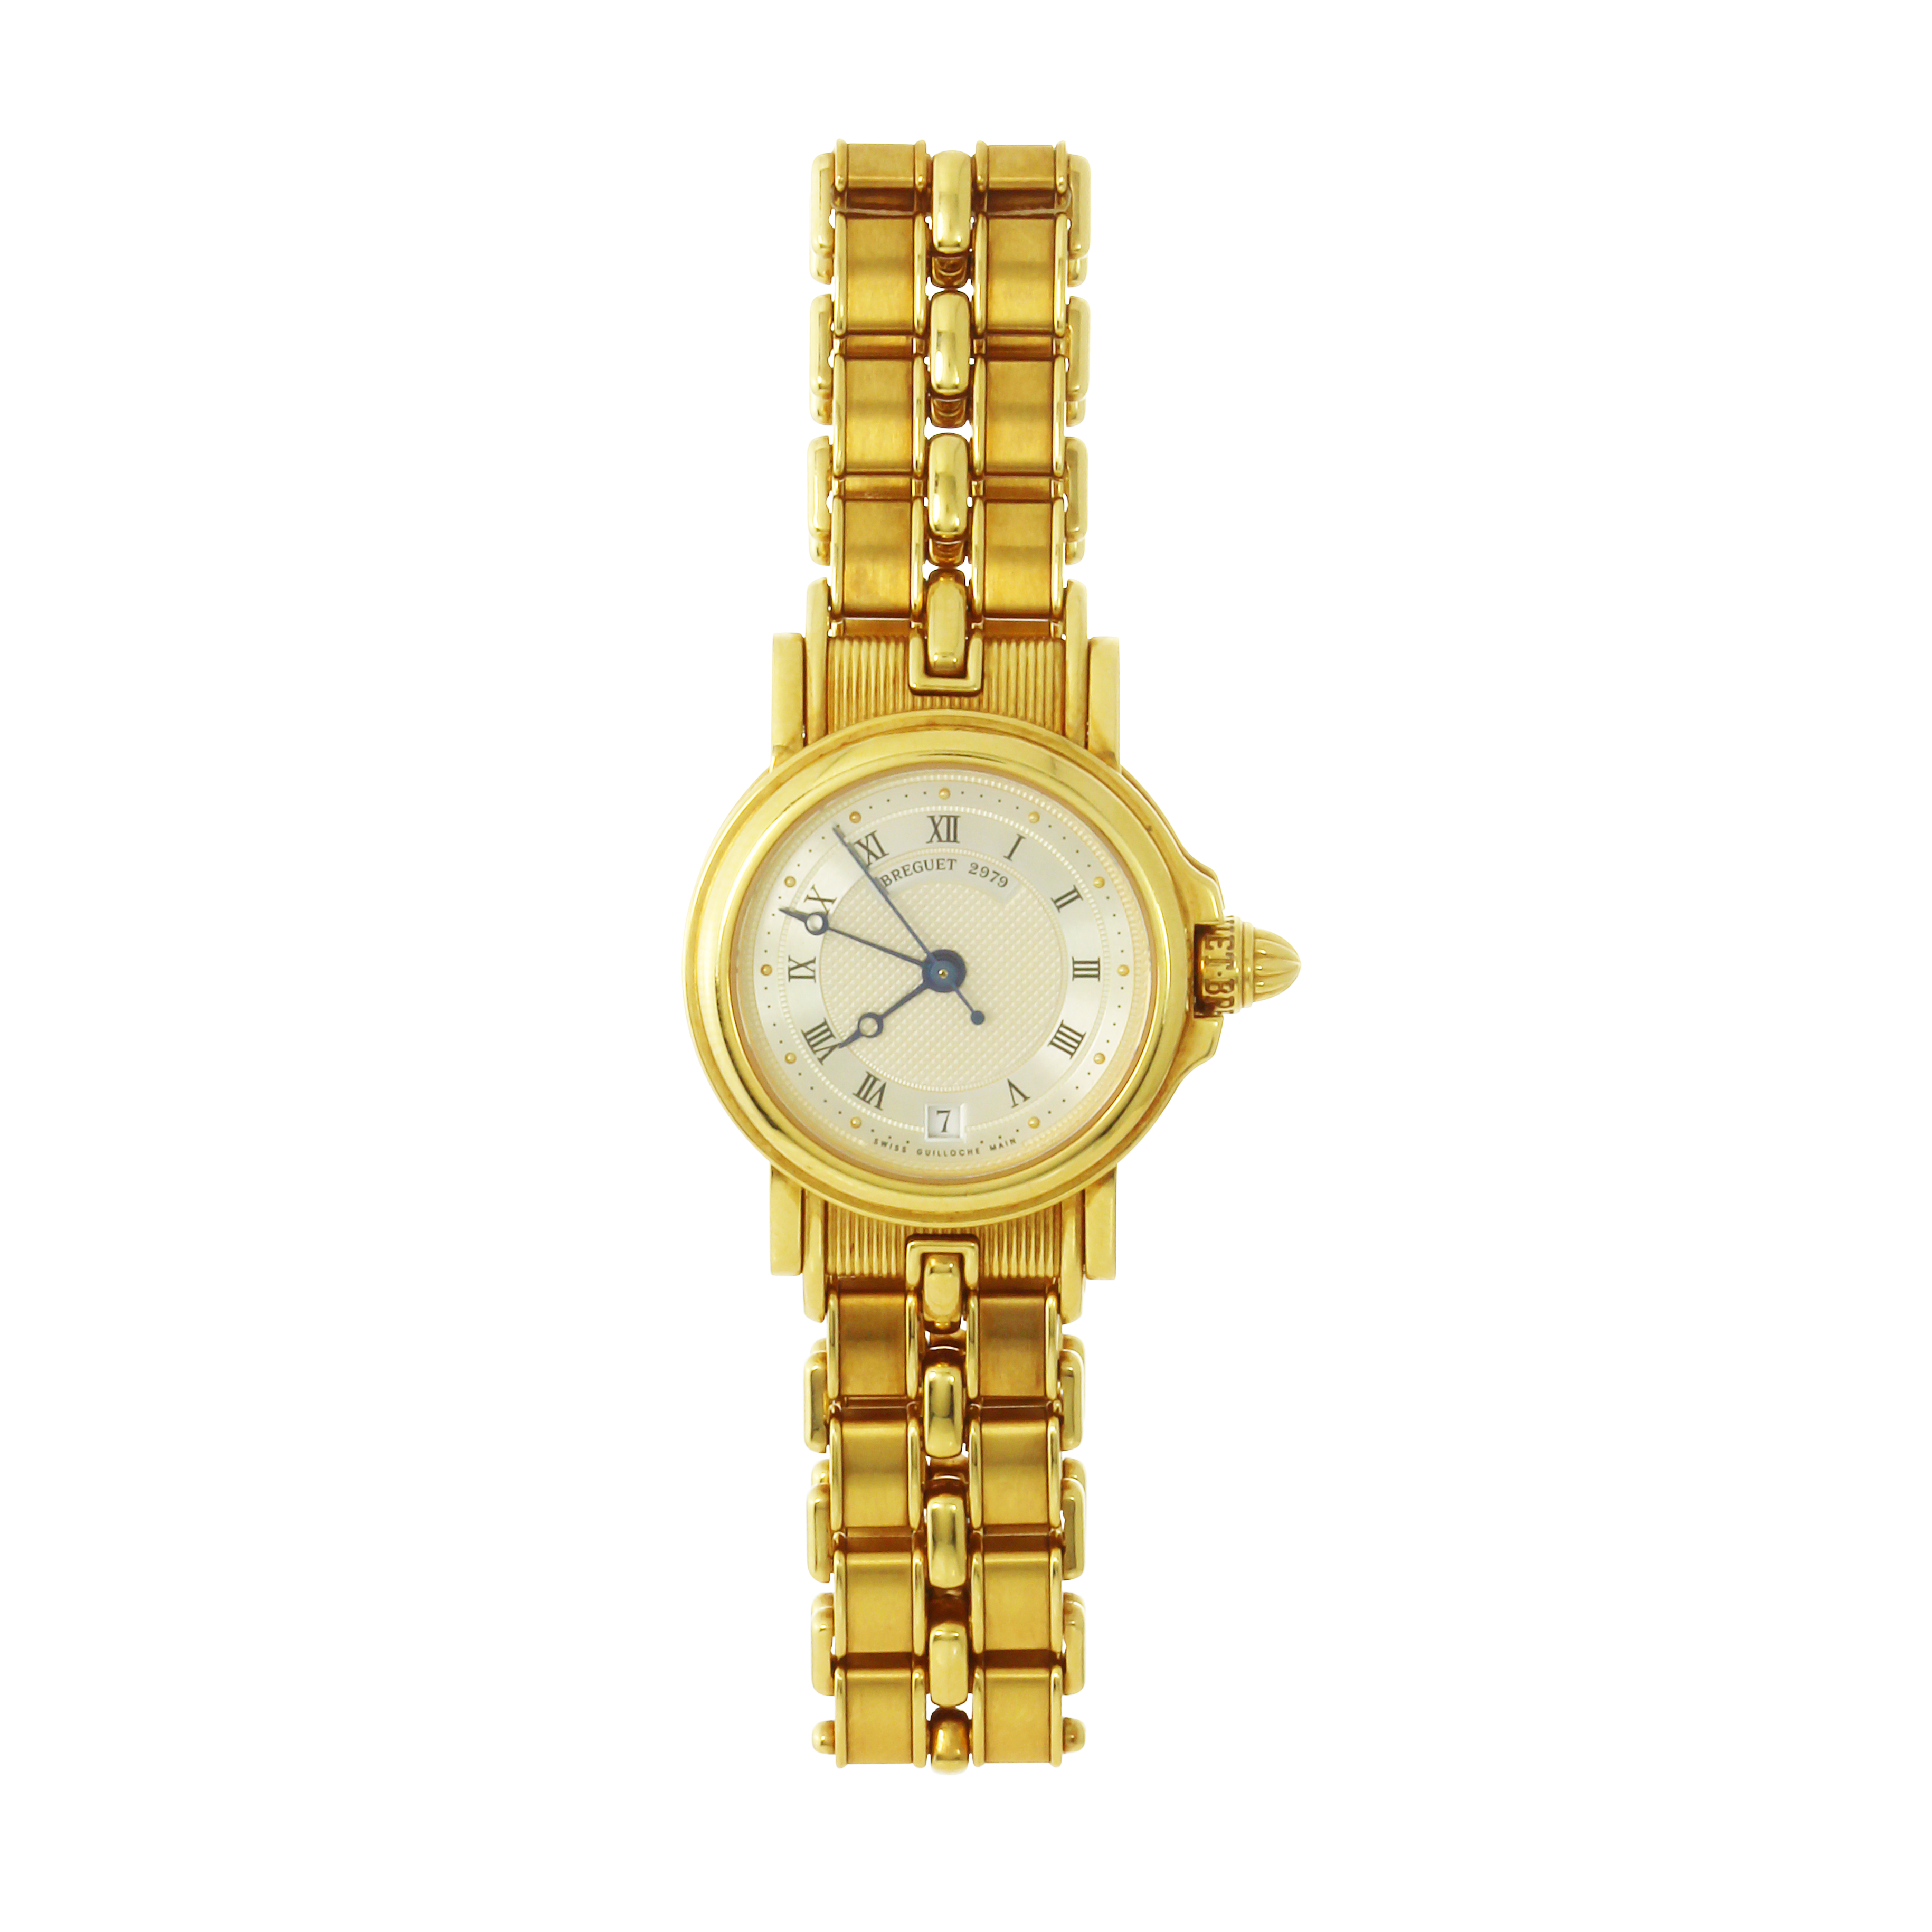 Los 151 - A MARINE 3400 LADIES GOLD WRISTWATCH BREGUET in 18ct yellow gold, the 26mm circular face with